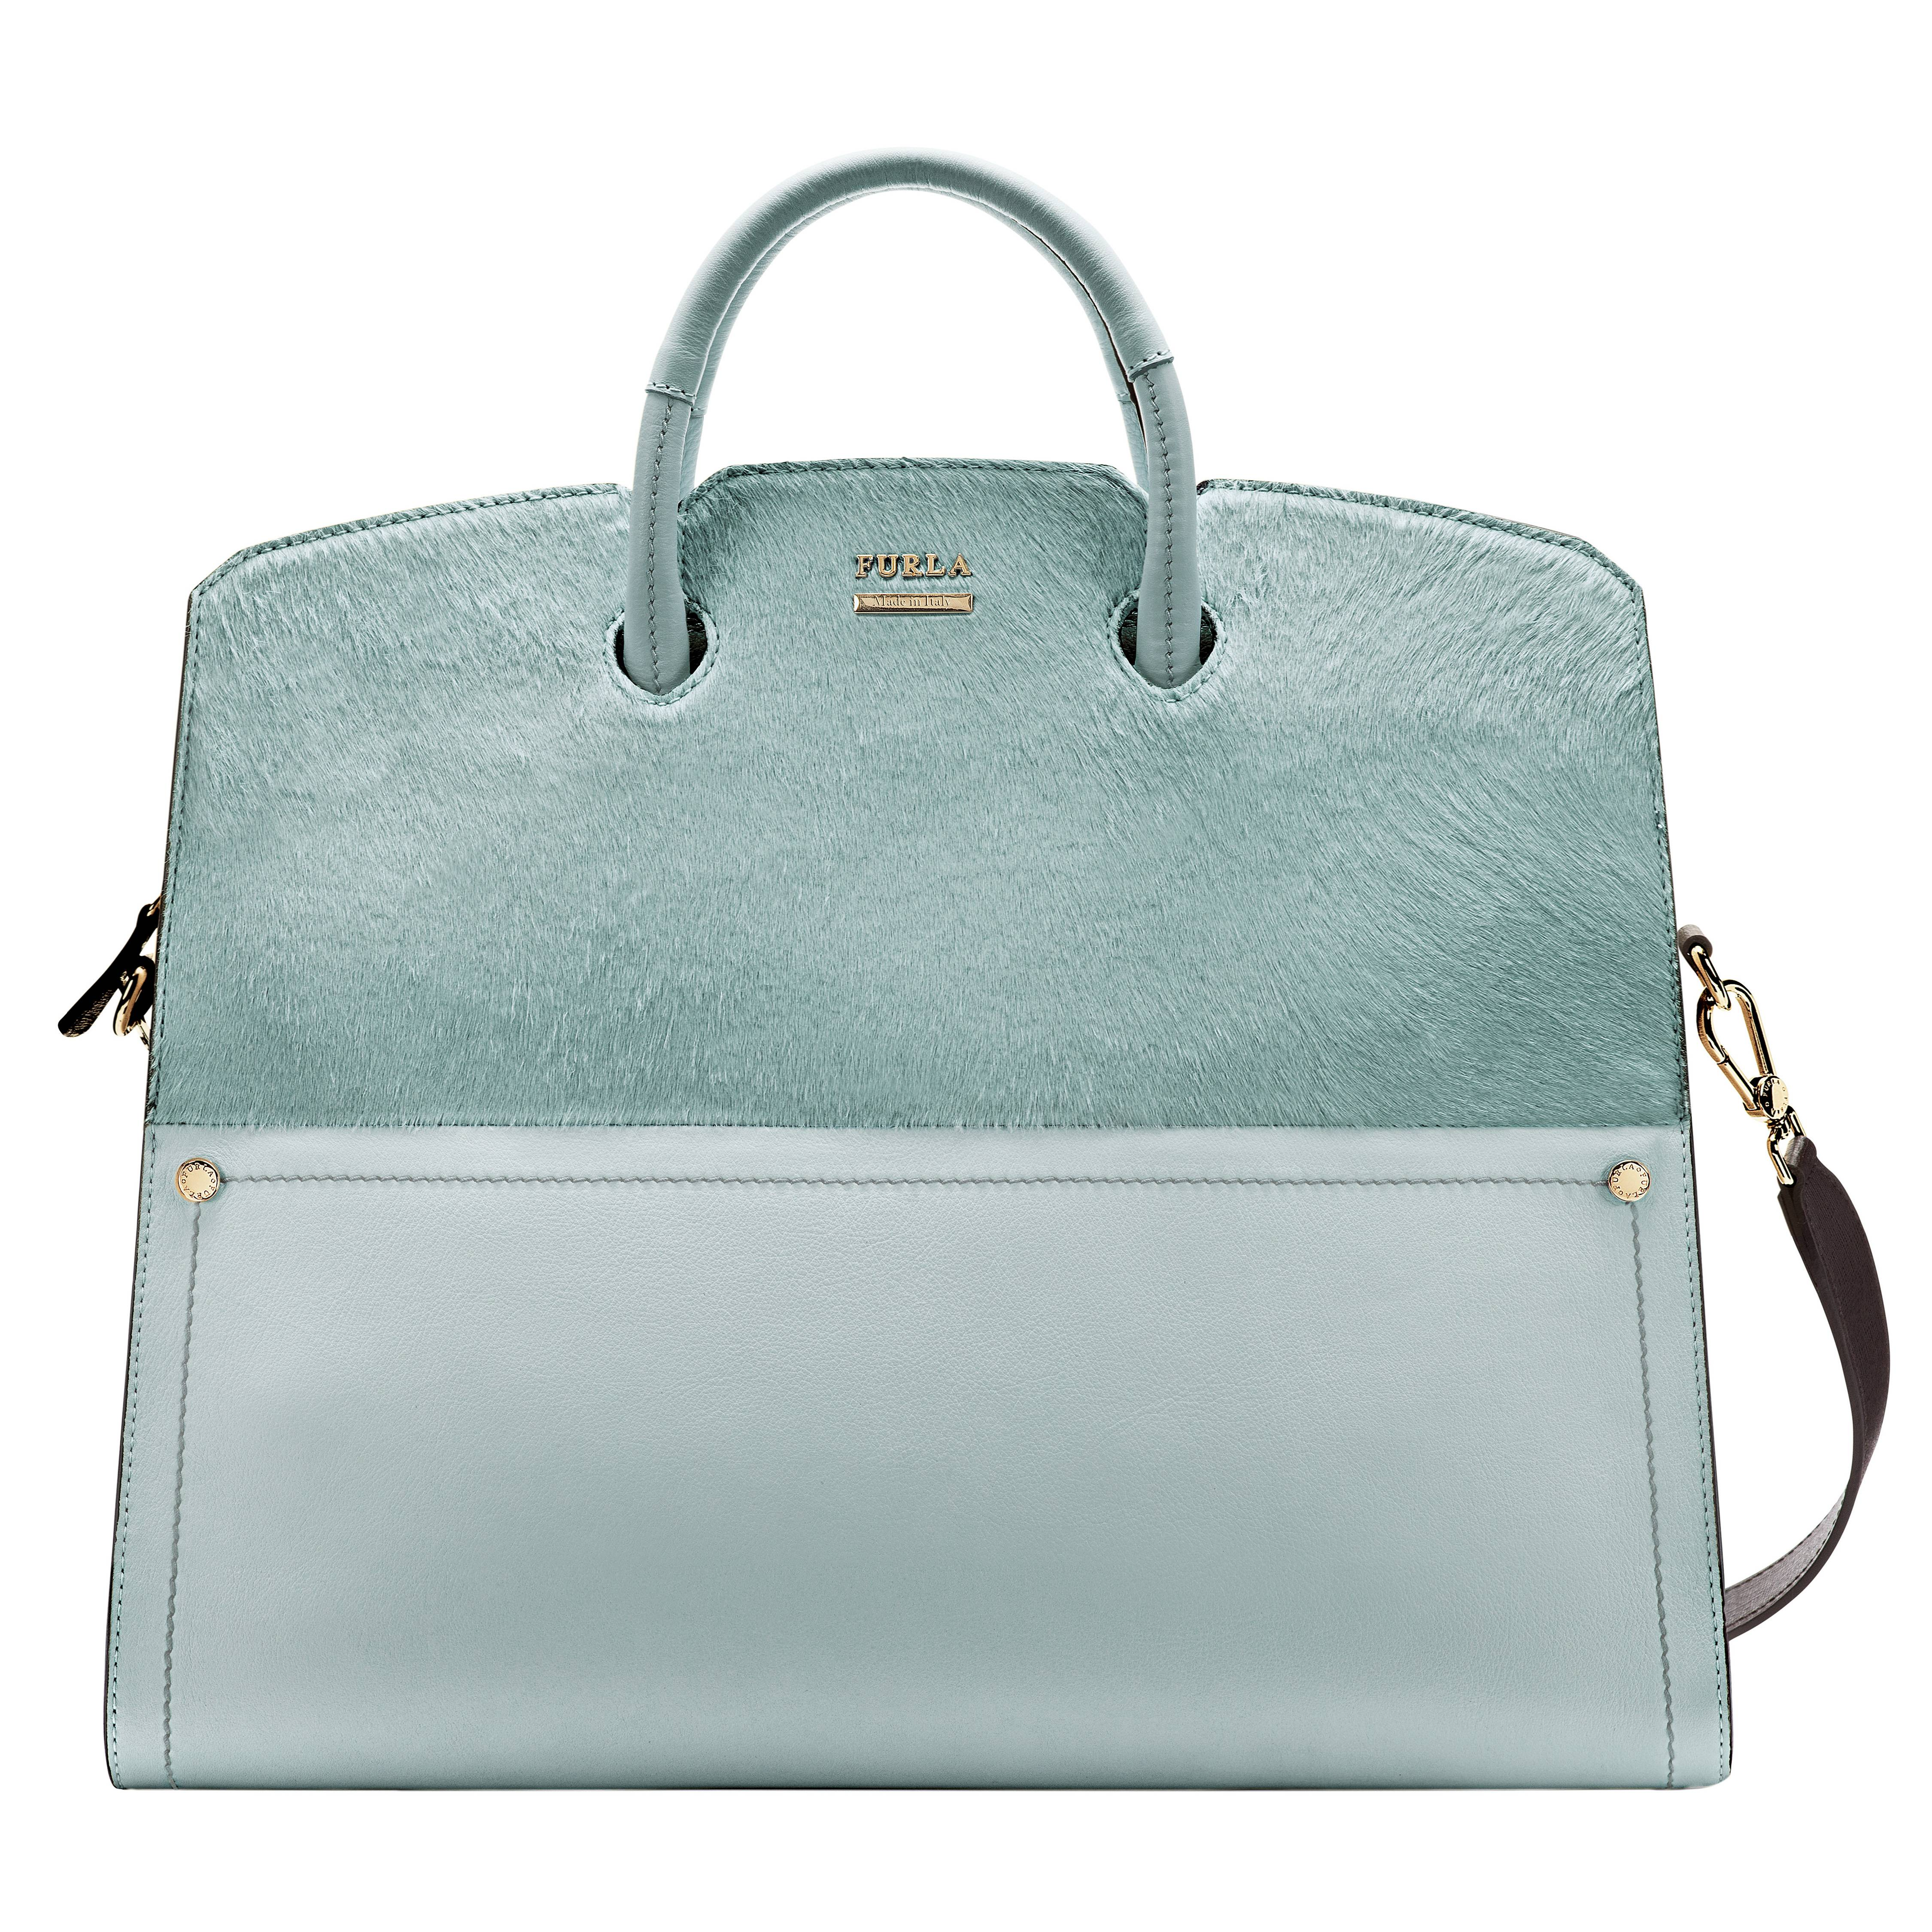 FURLA IT-BAG SS 2014